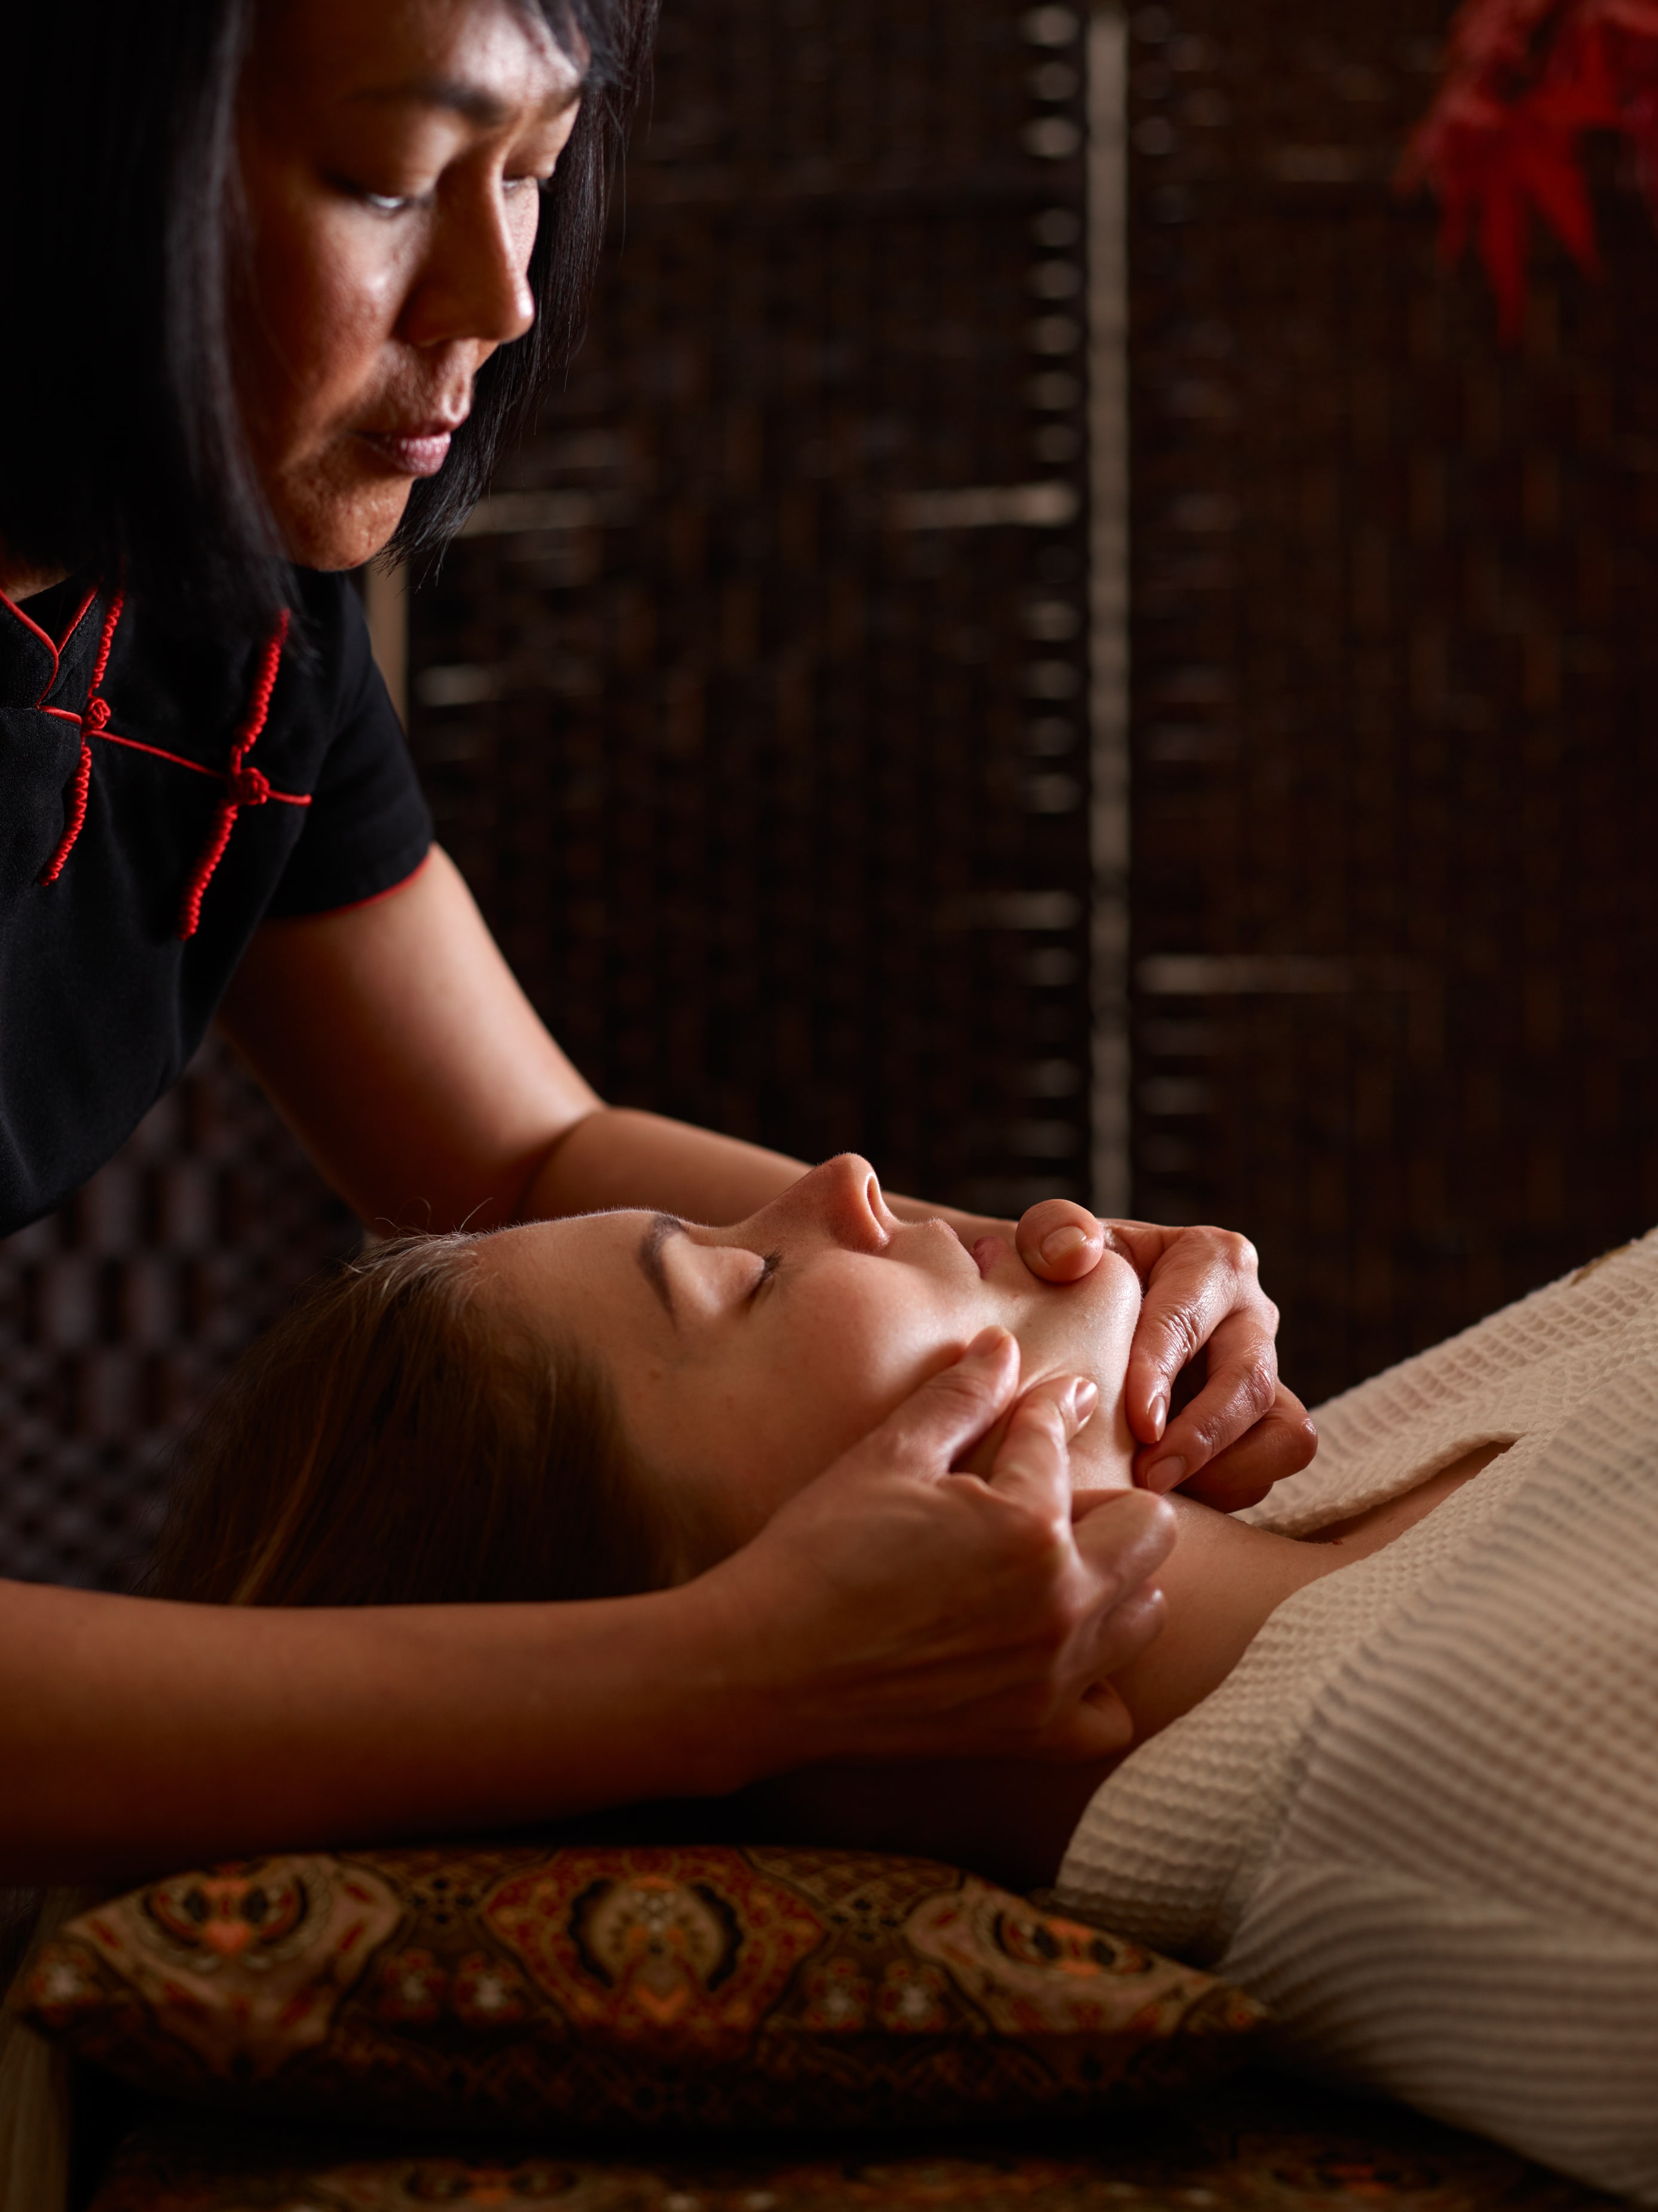 An express treatment which is a perfect treat for you during your spa day